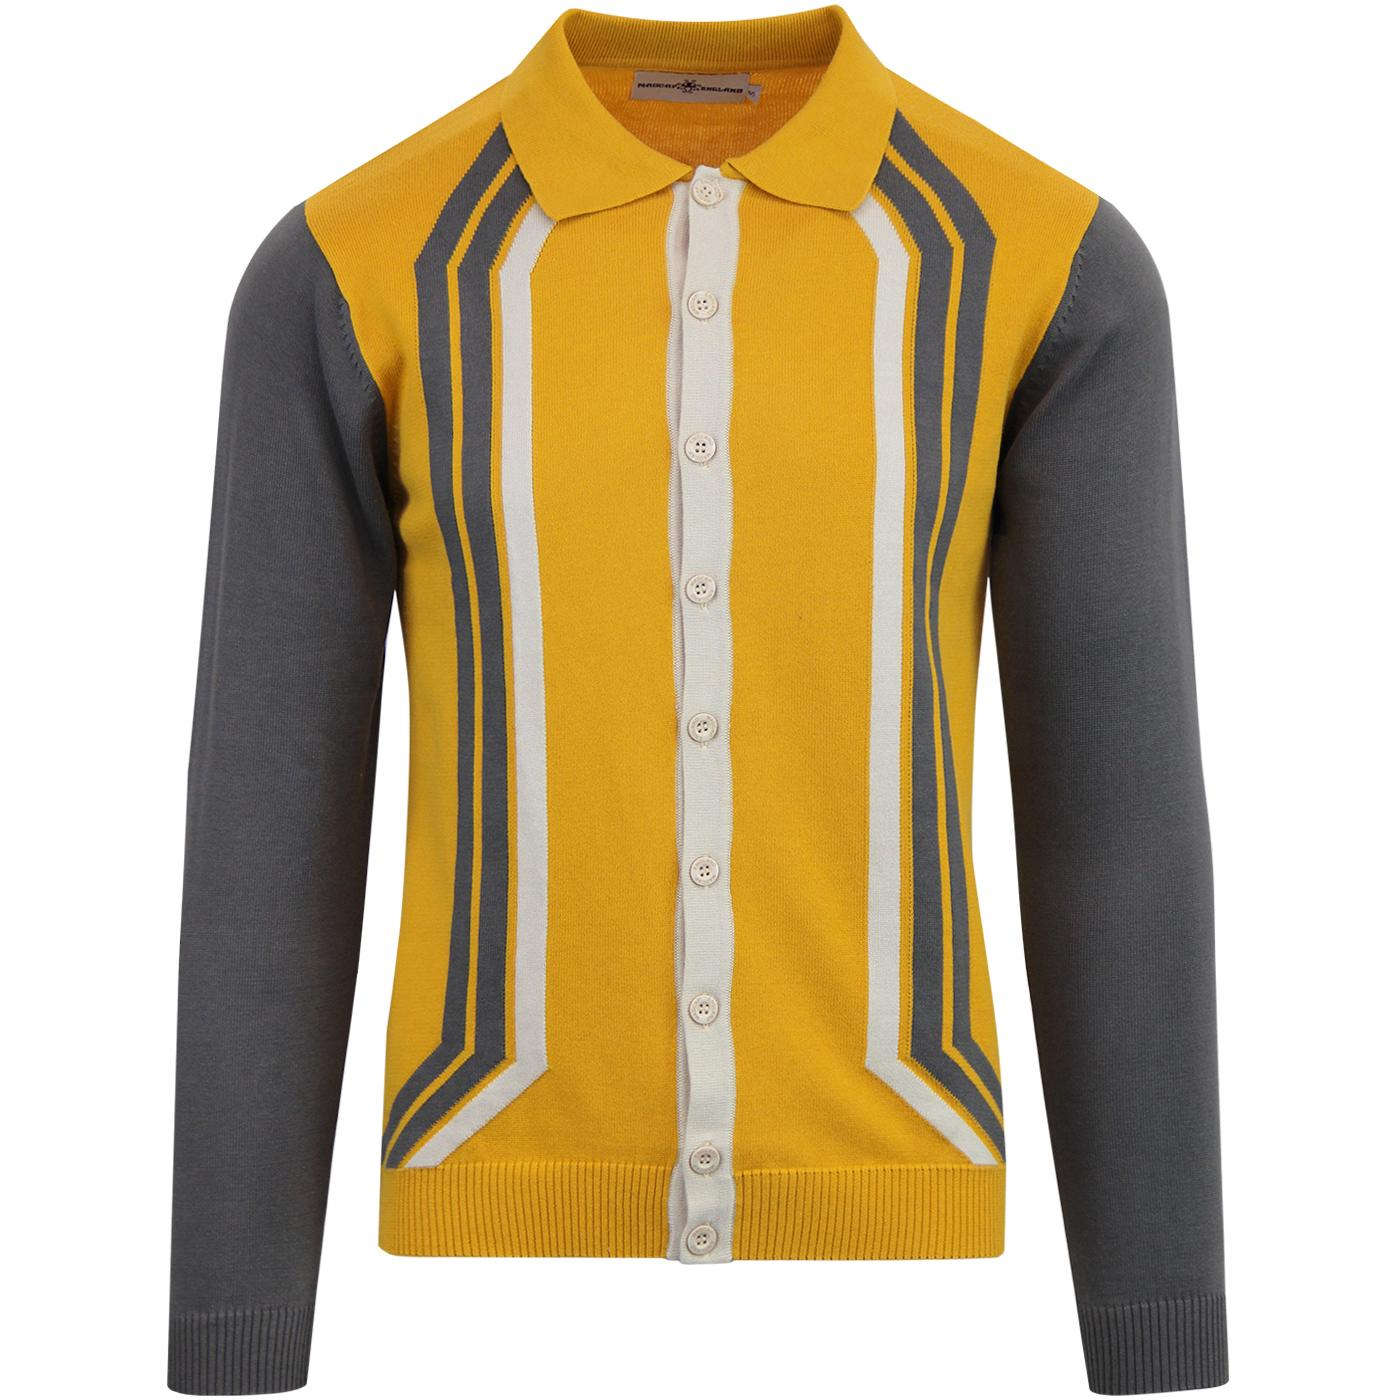 madcap england mens retro mod contrast sleeve chest stripe button down cardigan golden glow yellow grey